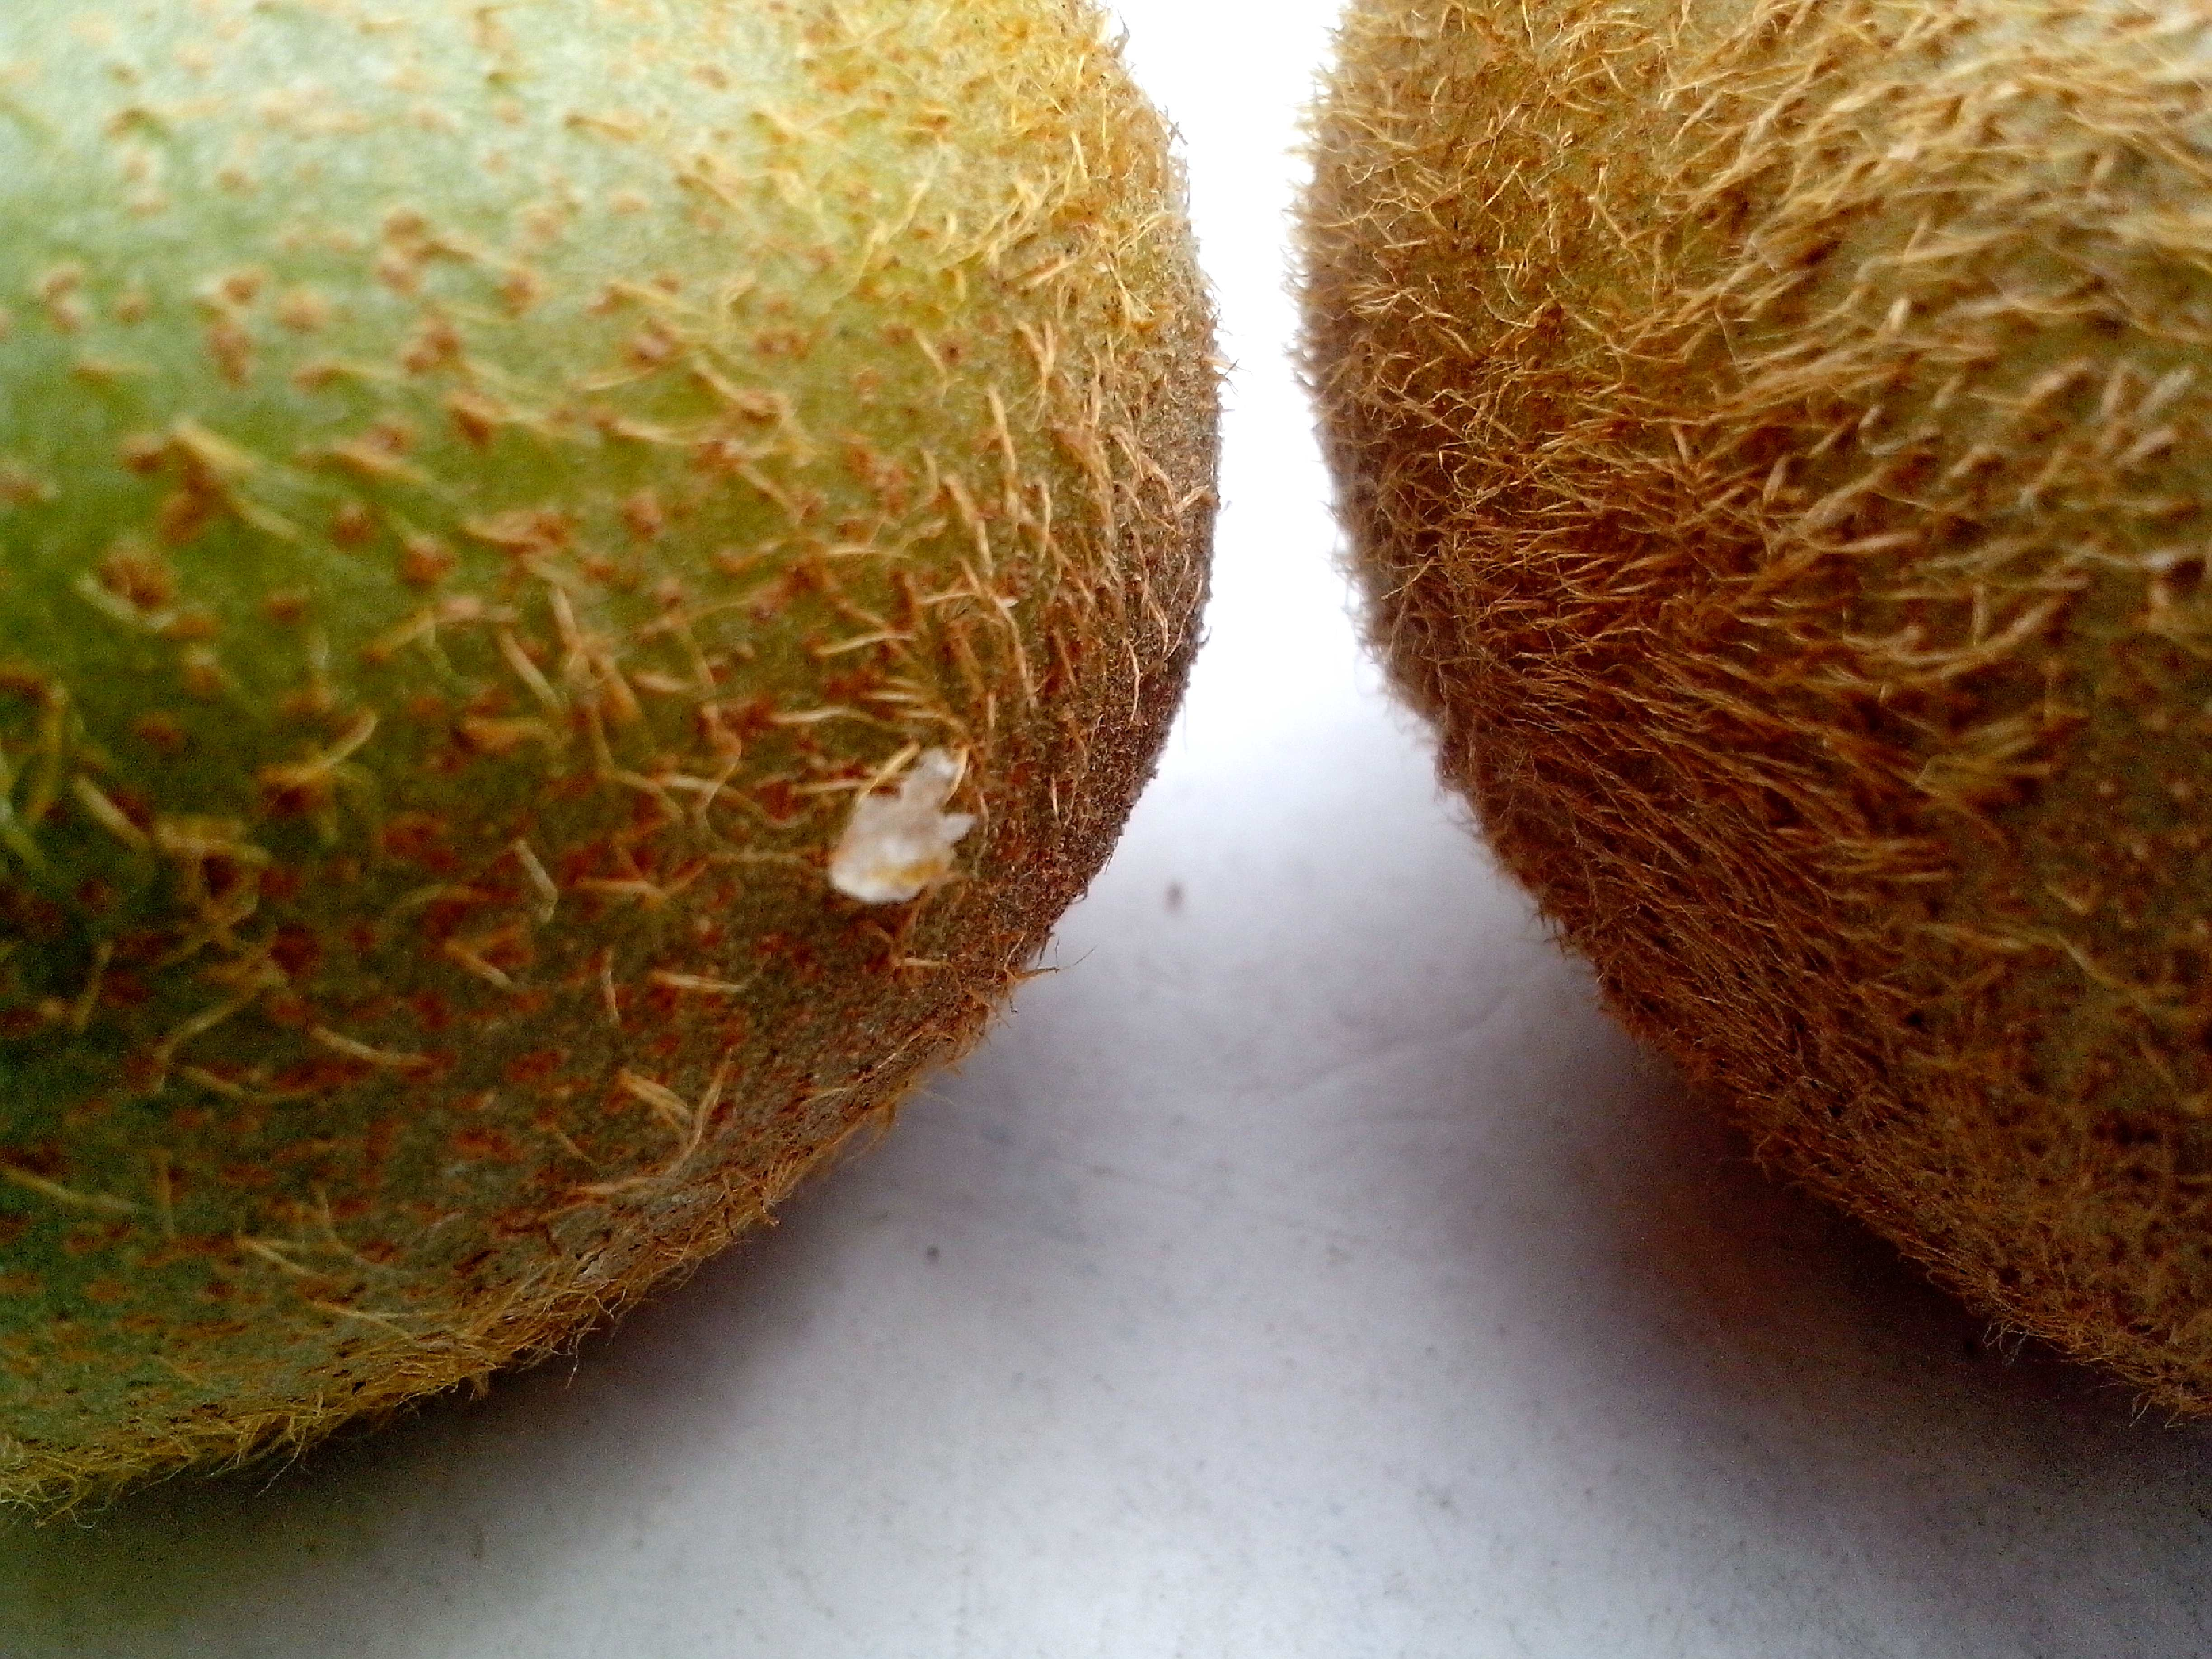 Free photograph; detailed, picture, hairs, kiwi, fruit